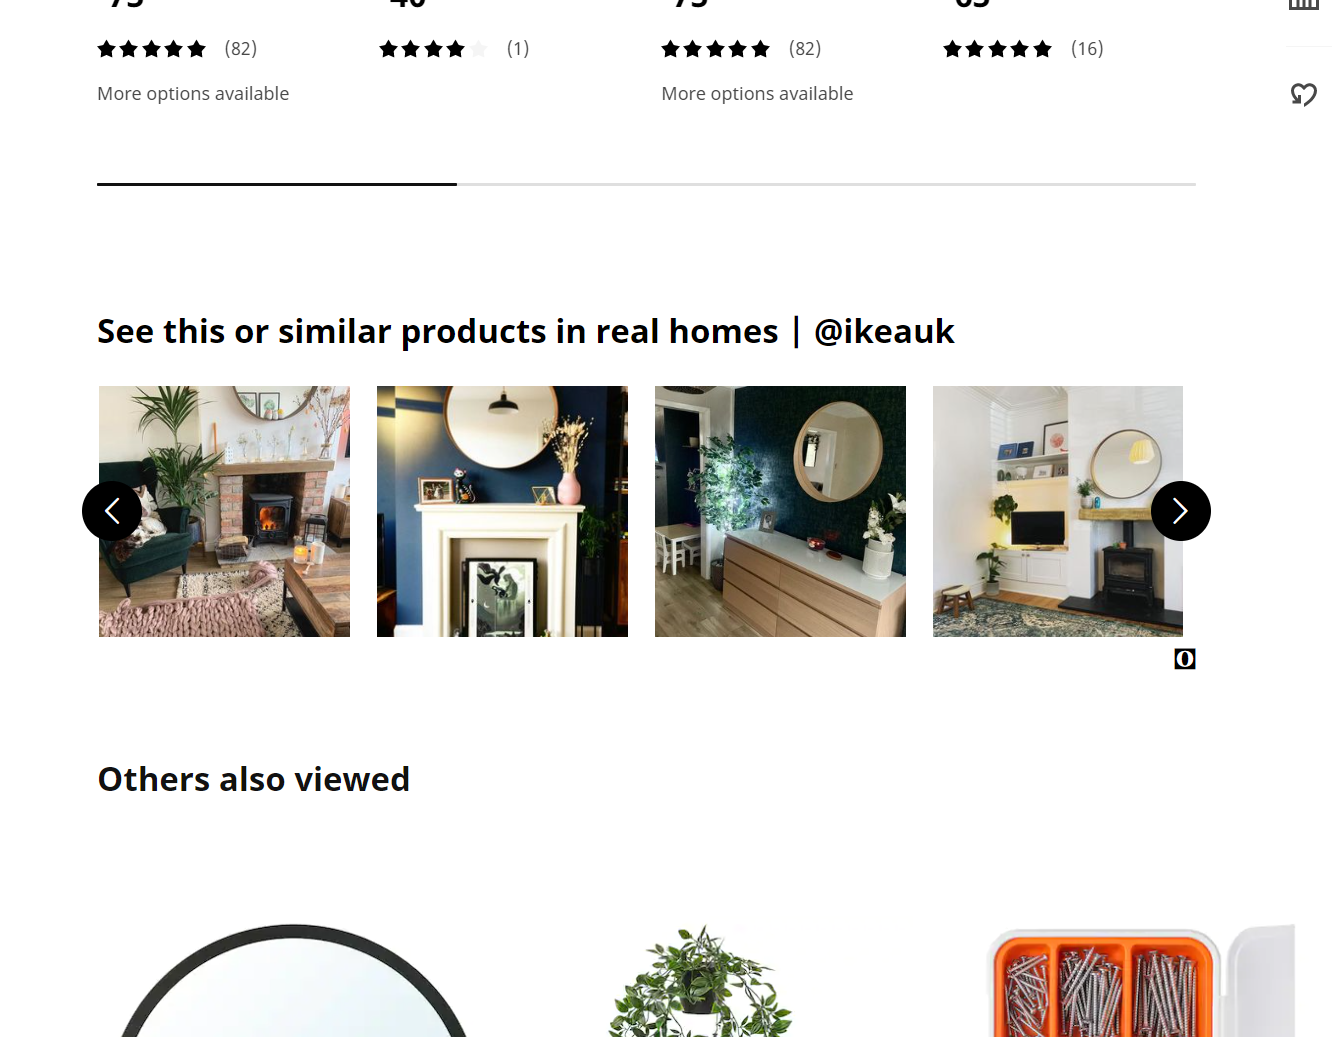 Ikea product page using user-generated content as a creative marketing strategy.